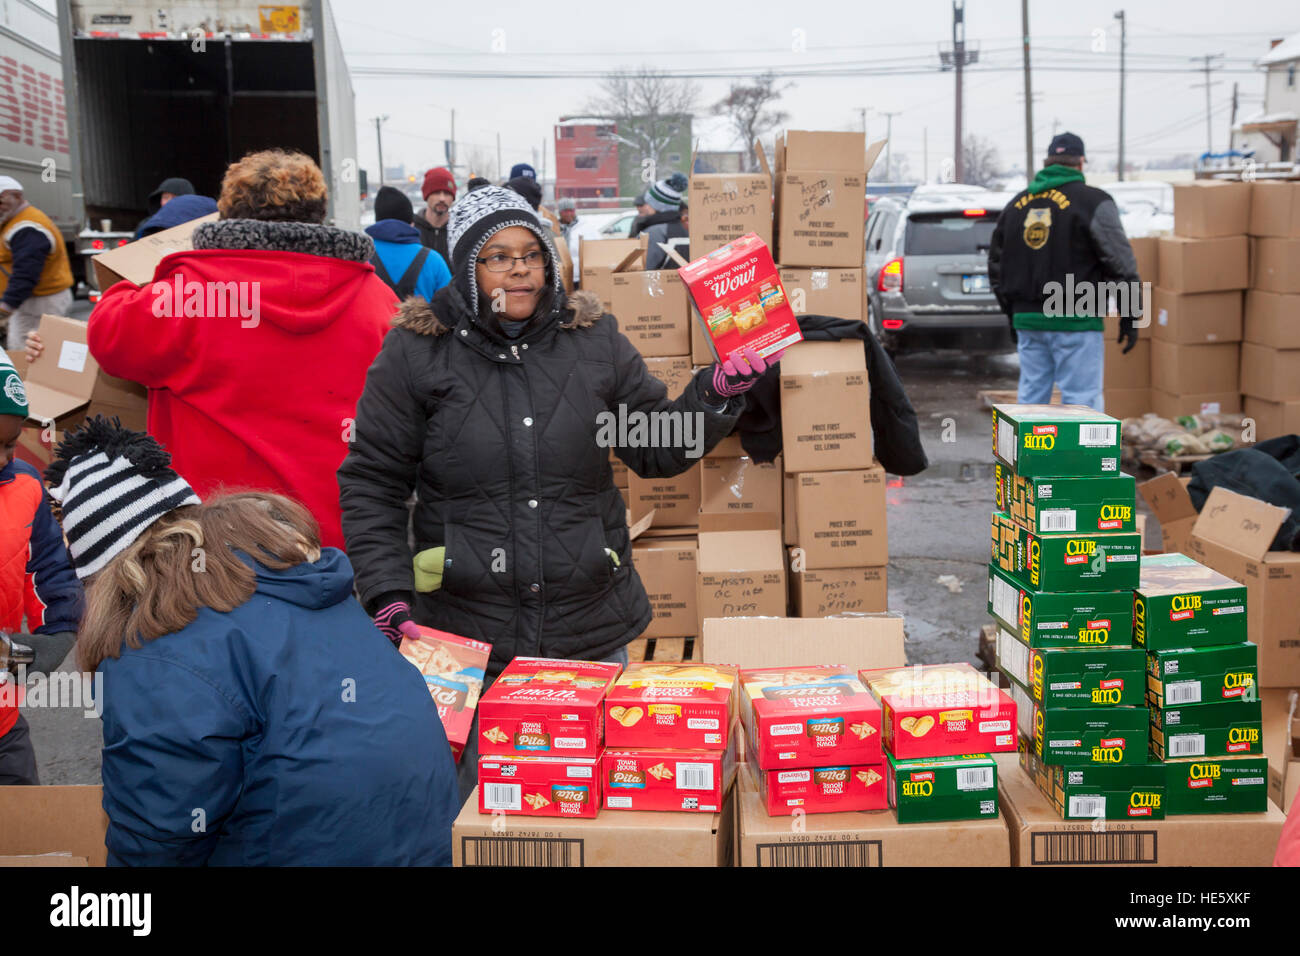 Detroit, Michigan USA - 17 December 2016 - Members of the Teamsters and AFL-CIO unions package holiday food boxes - Stock Image